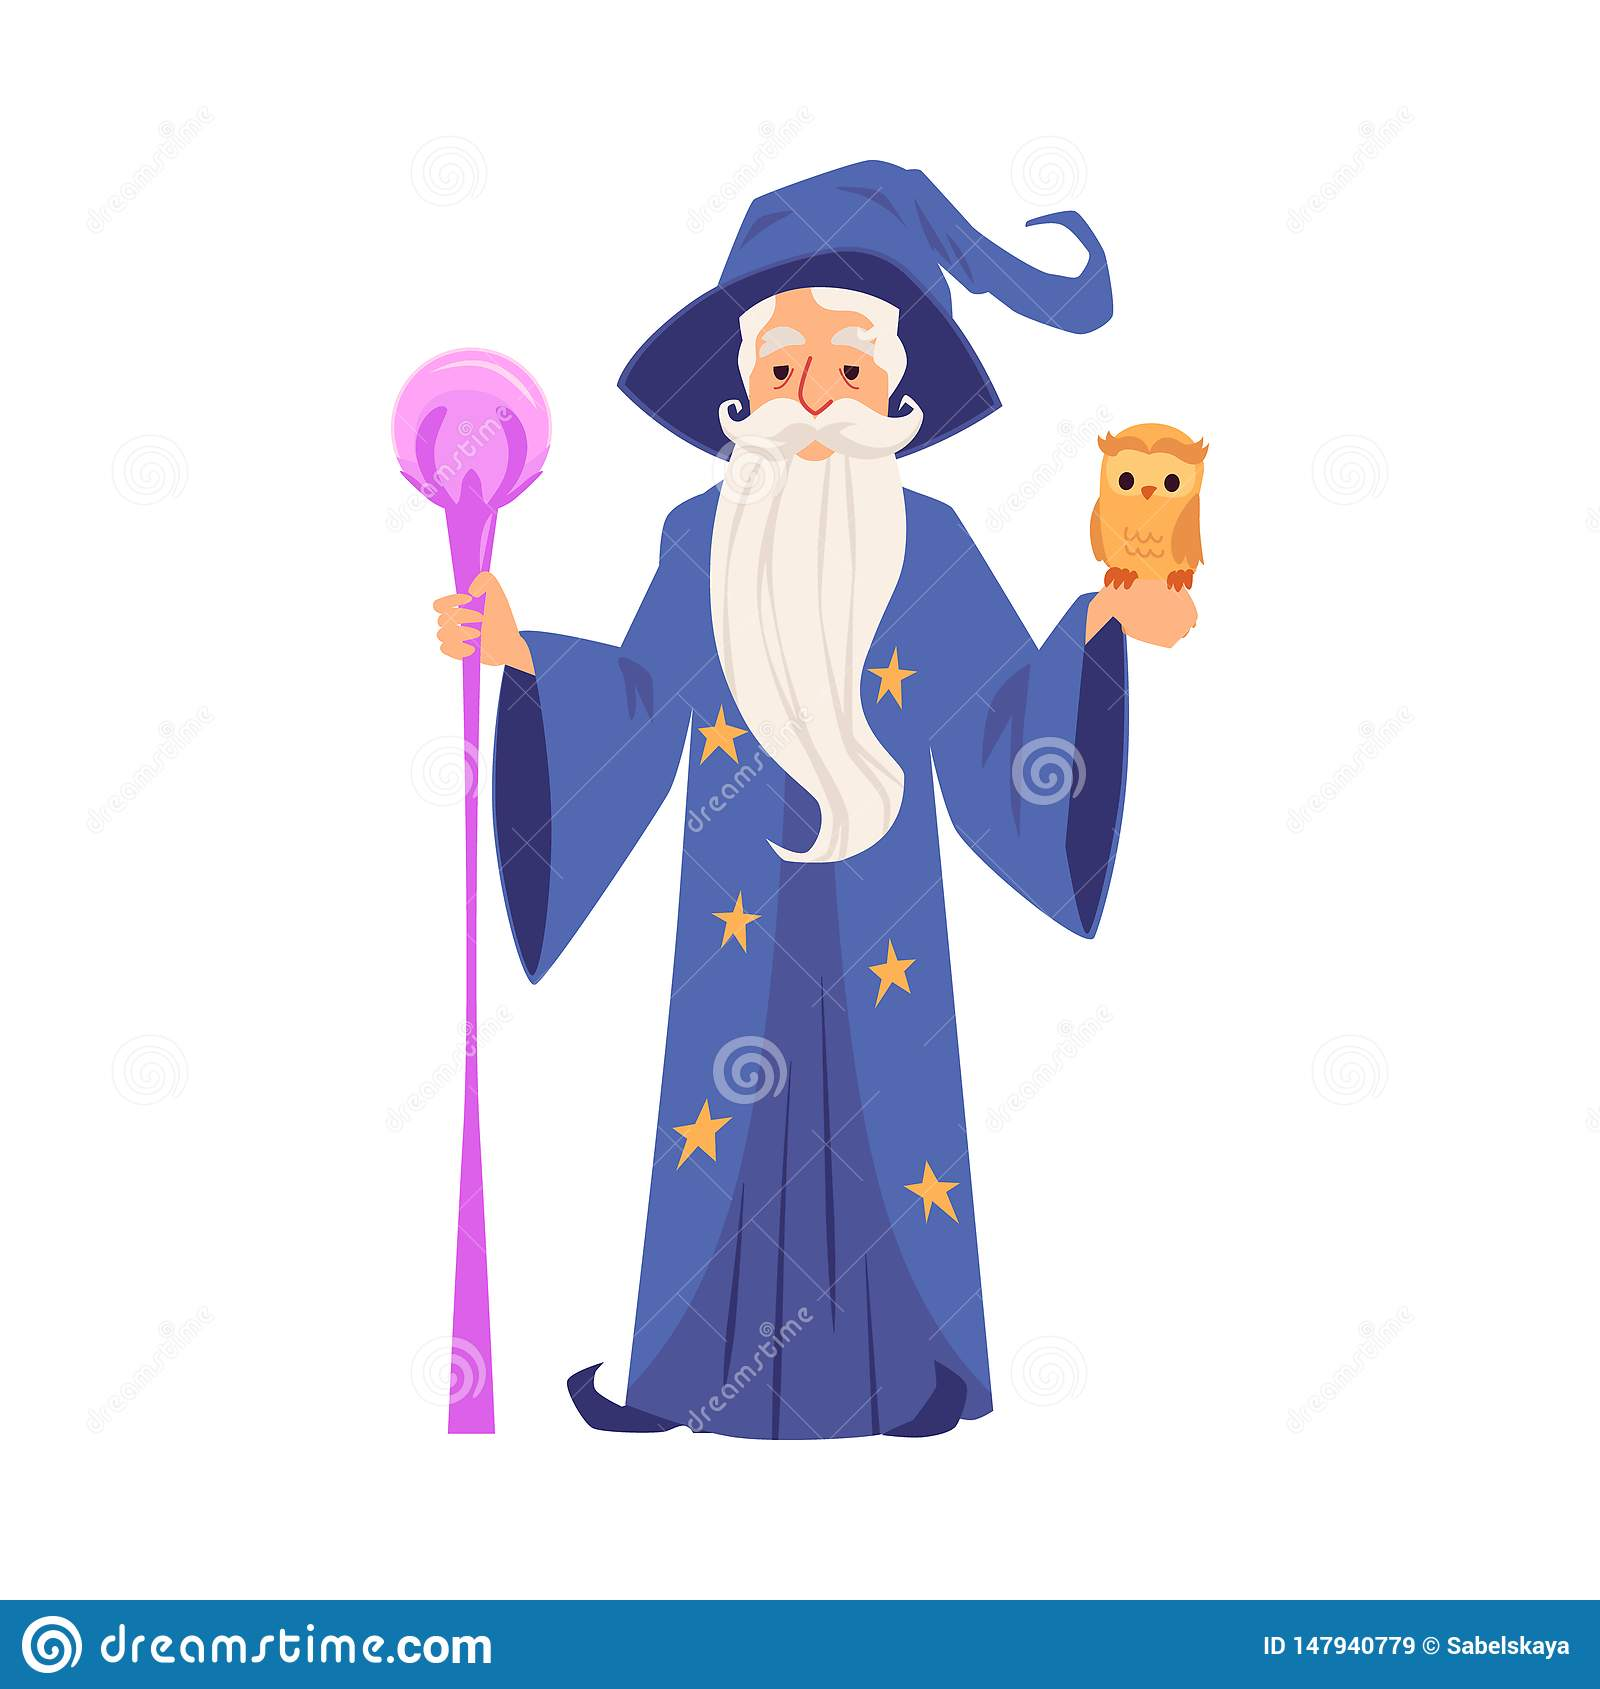 Old Man Robe Cartoon Stock Illustrations 751 Old Man Robe Cartoon Stock Illustrations Vectors Clipart Dreamstime